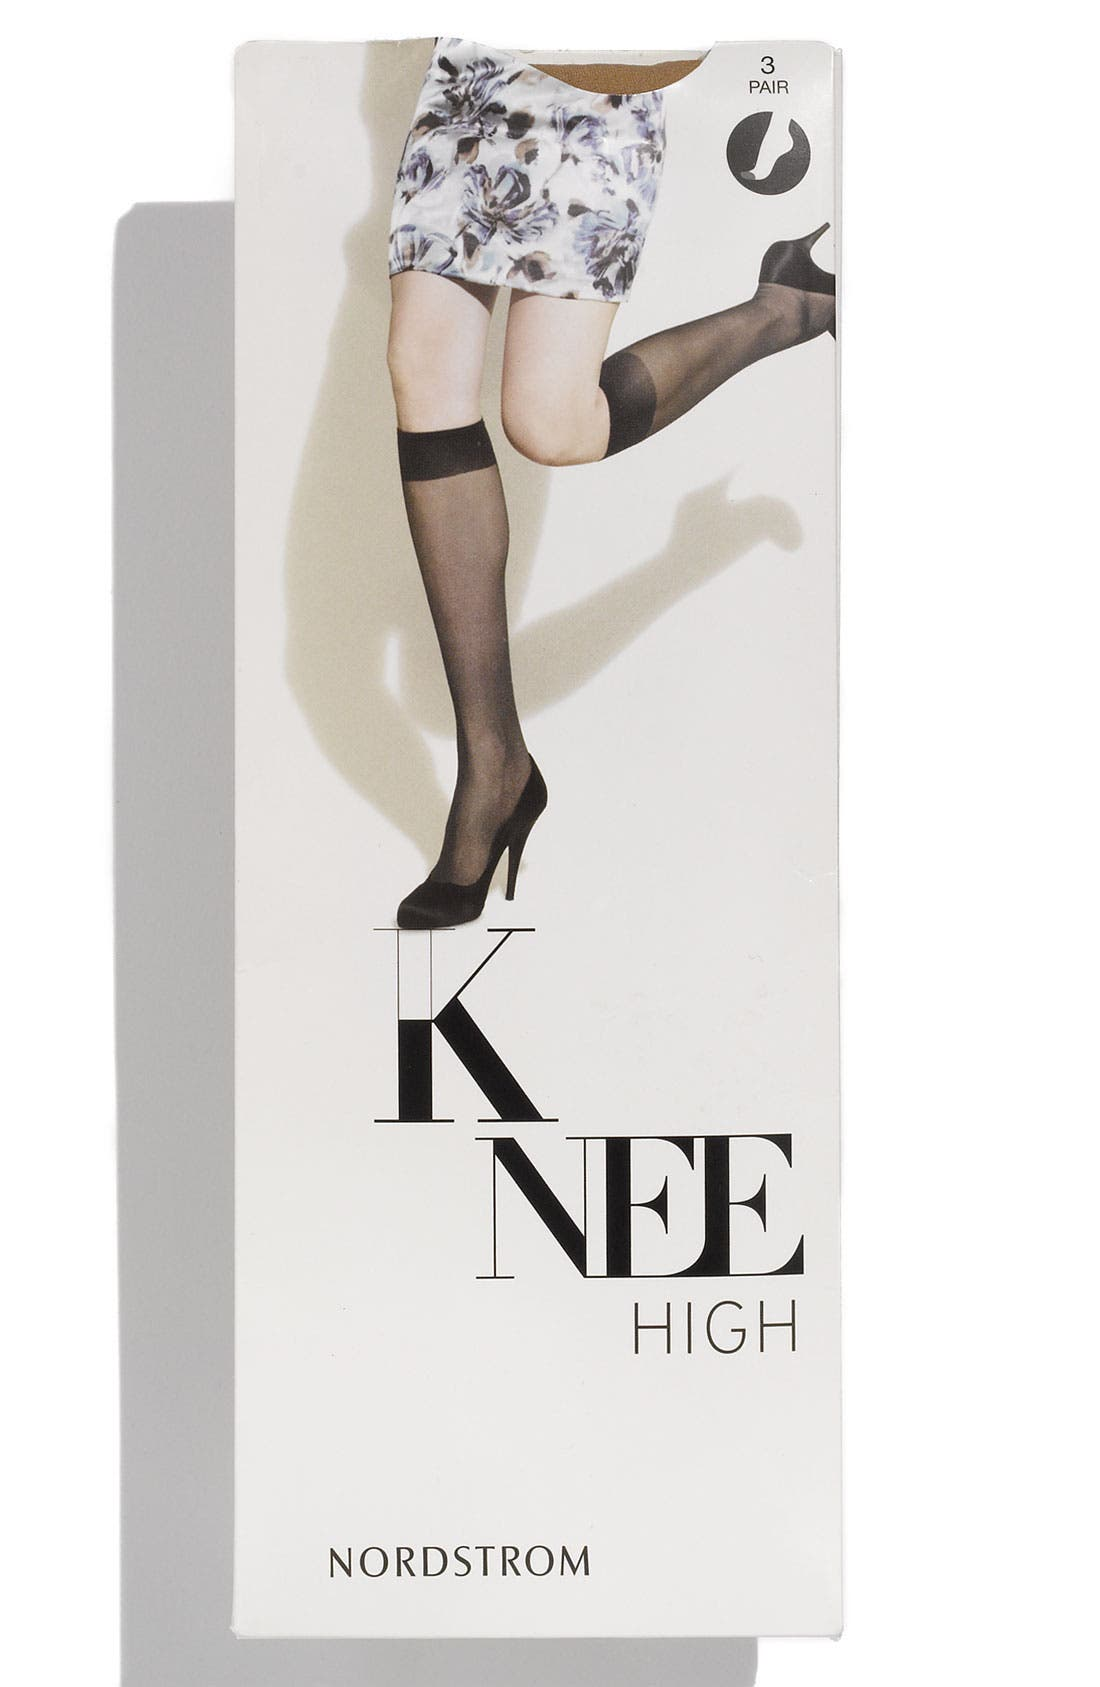 Alternate Image 1 Selected - Nordstrom Sheer Knee High Stockings with Reinforced Toe (3-Pack)